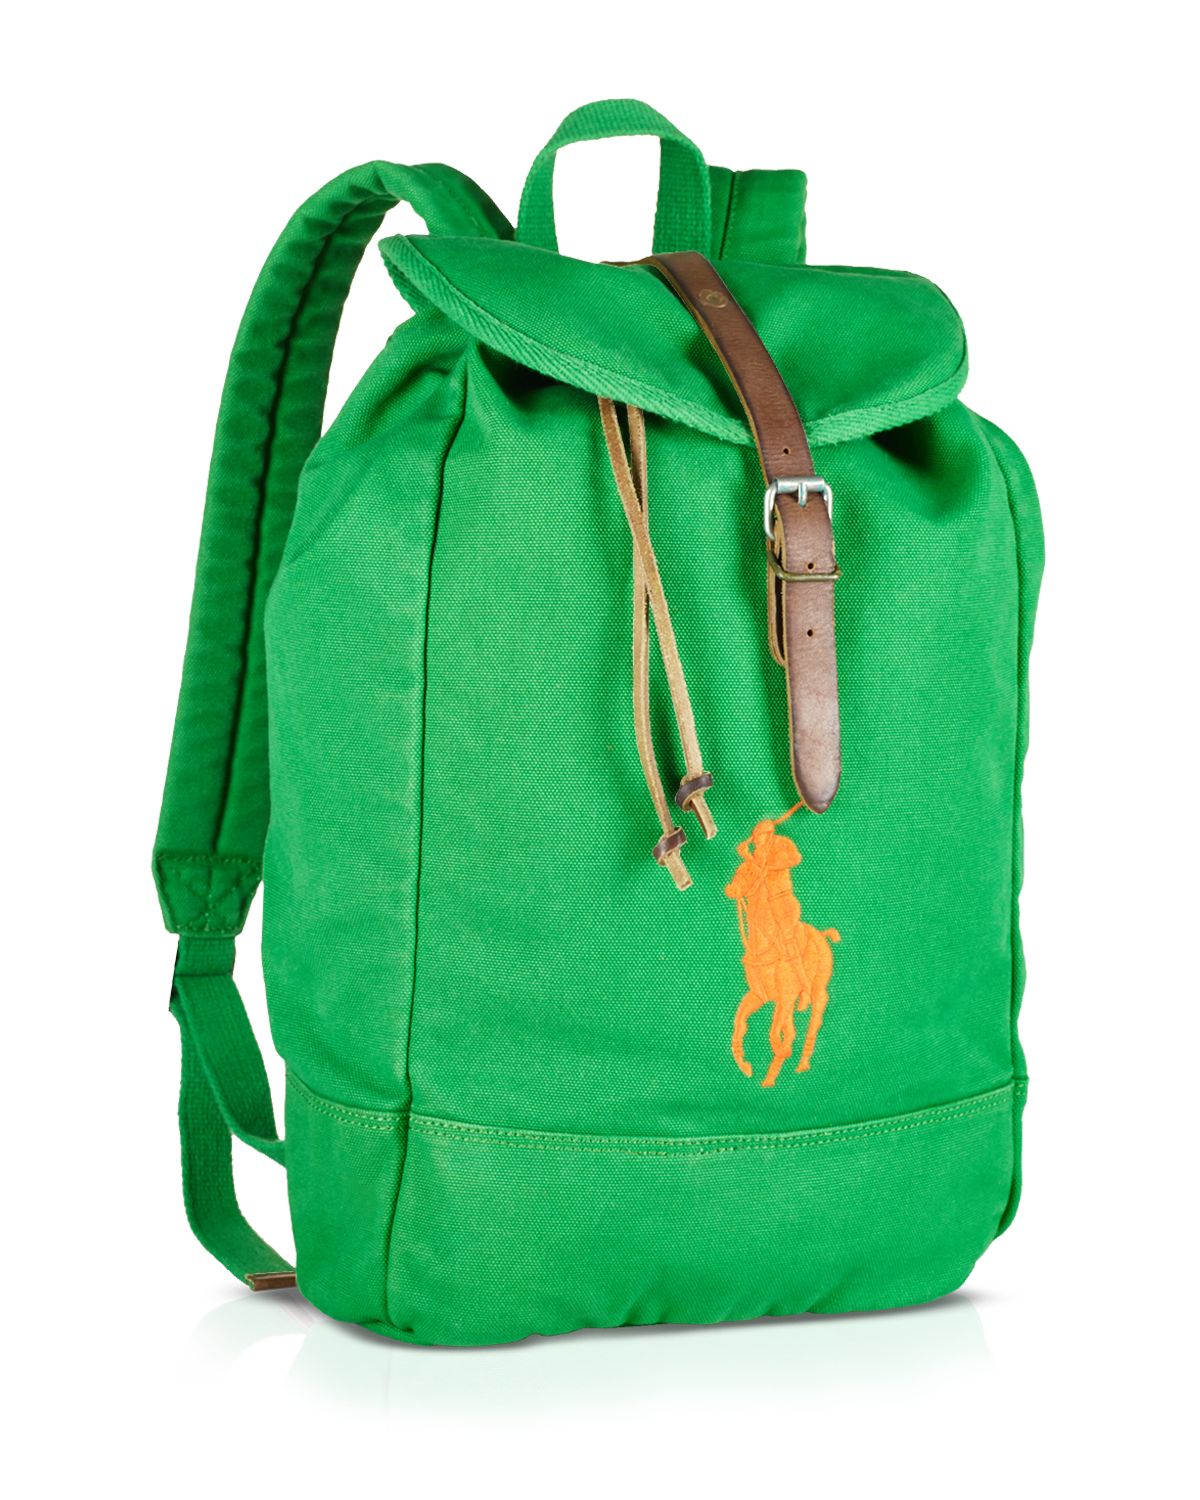 31f5f6cecf6c Lyst ralph lauren polo canvas backpack in green for men jpg 1200x1500 Polo  canvas backpack